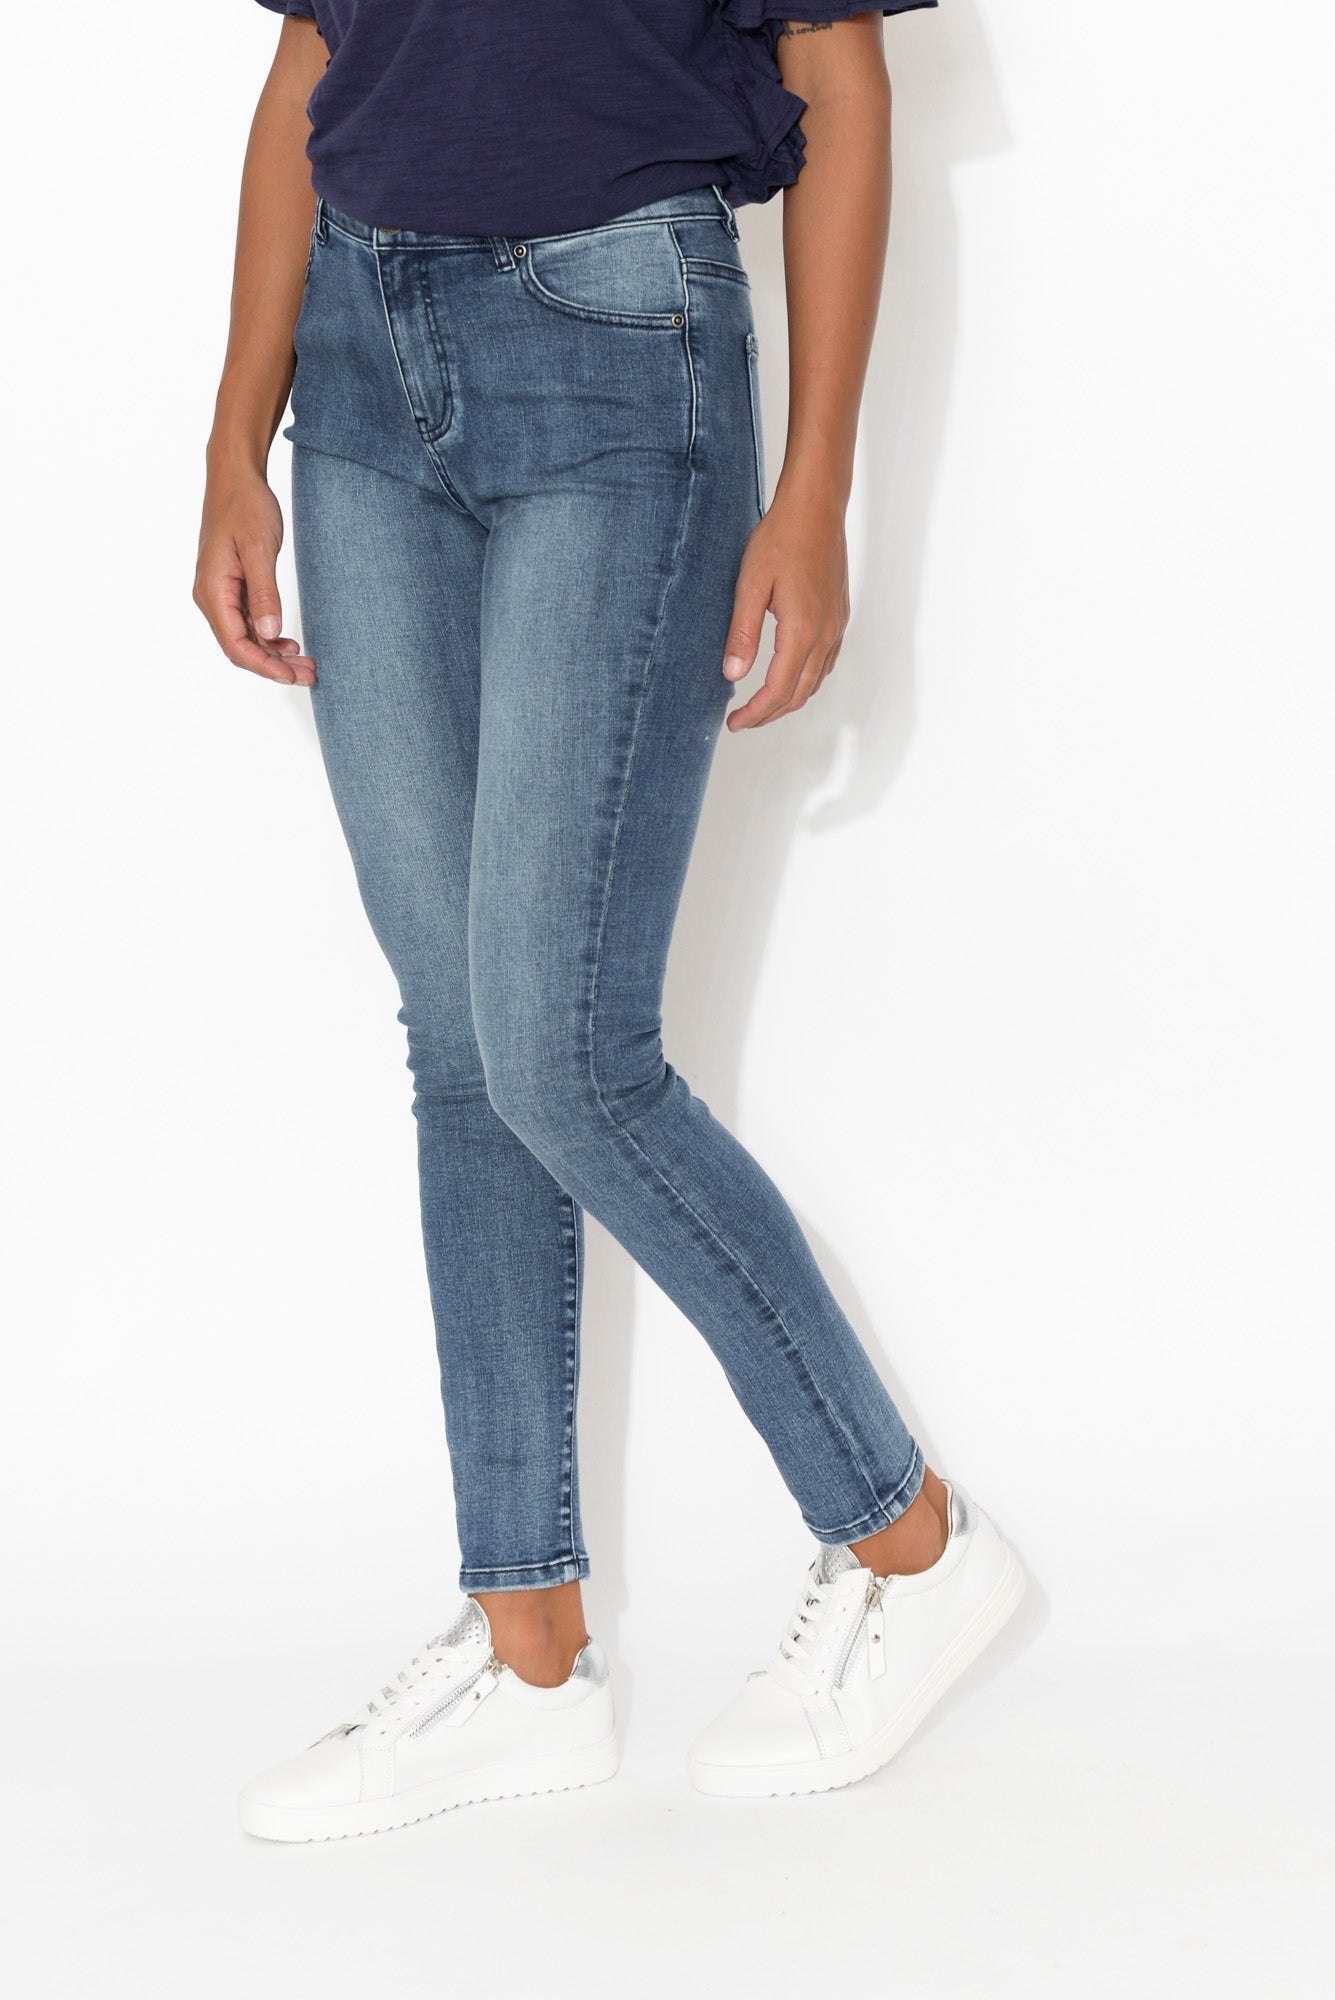 Katika Dark Denim Zip Front Jean